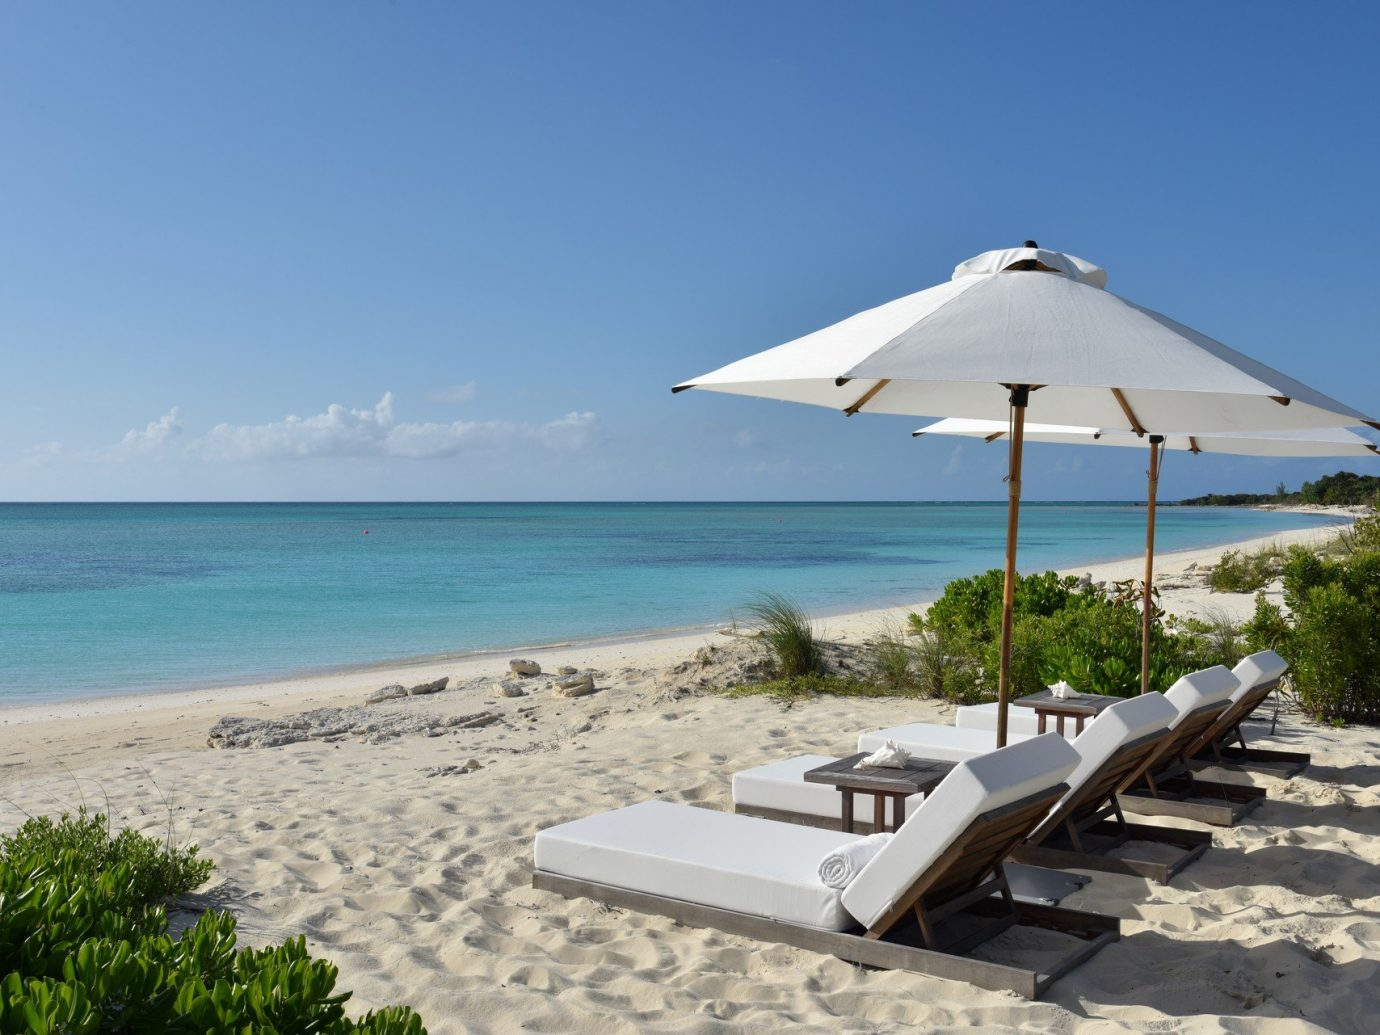 News Trip Ideas sky outdoor umbrella water Beach Nature chair Sea shore Ocean vacation Coast lawn caribbean cape bay Resort wind sandy shade day